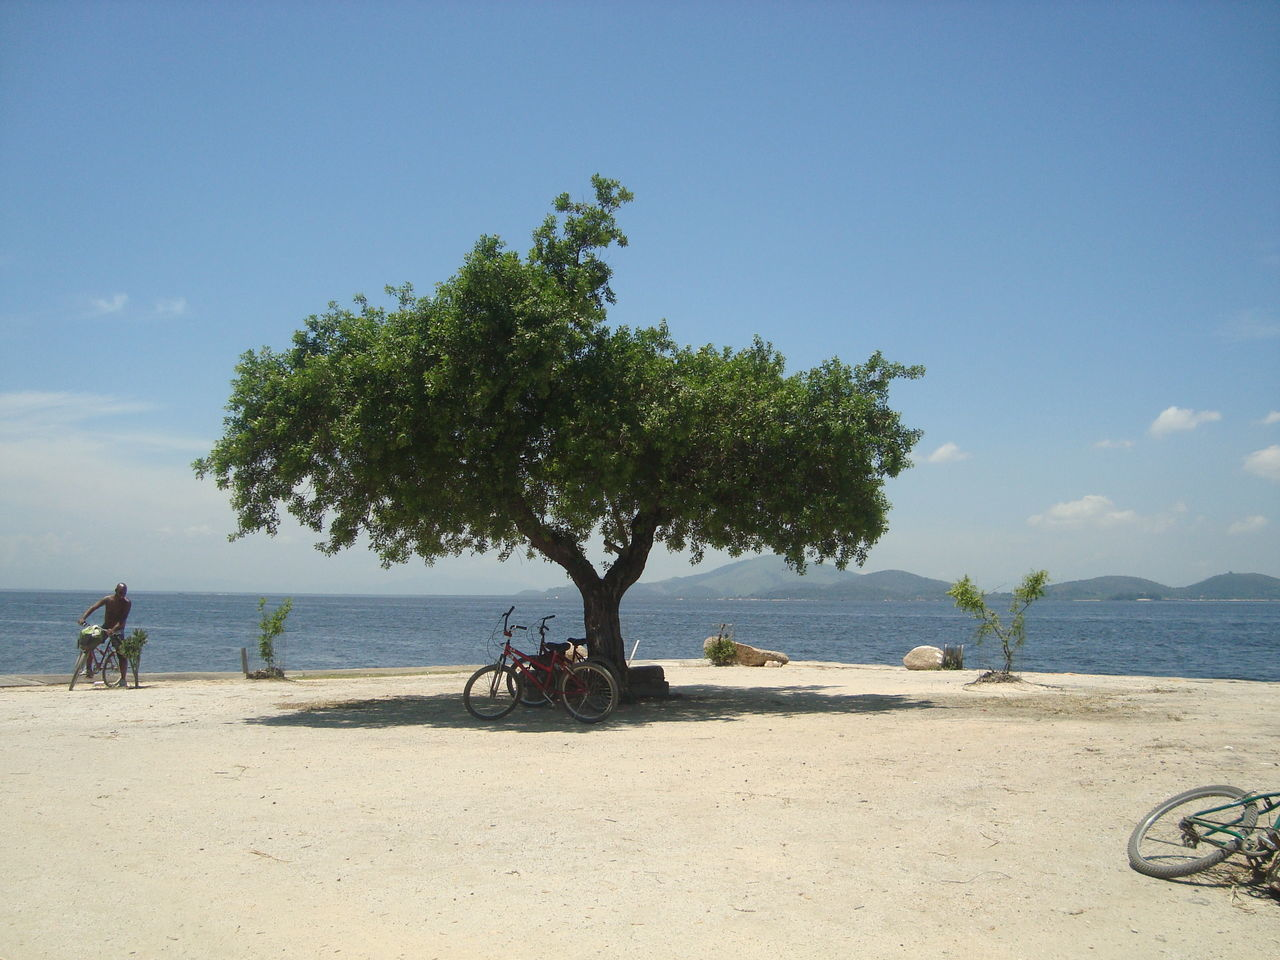 tree, beach, sky, sea, sand, bicycle, day, transportation, nature, beauty in nature, scenics, outdoors, water, real people, men, horizon over water, one person, people